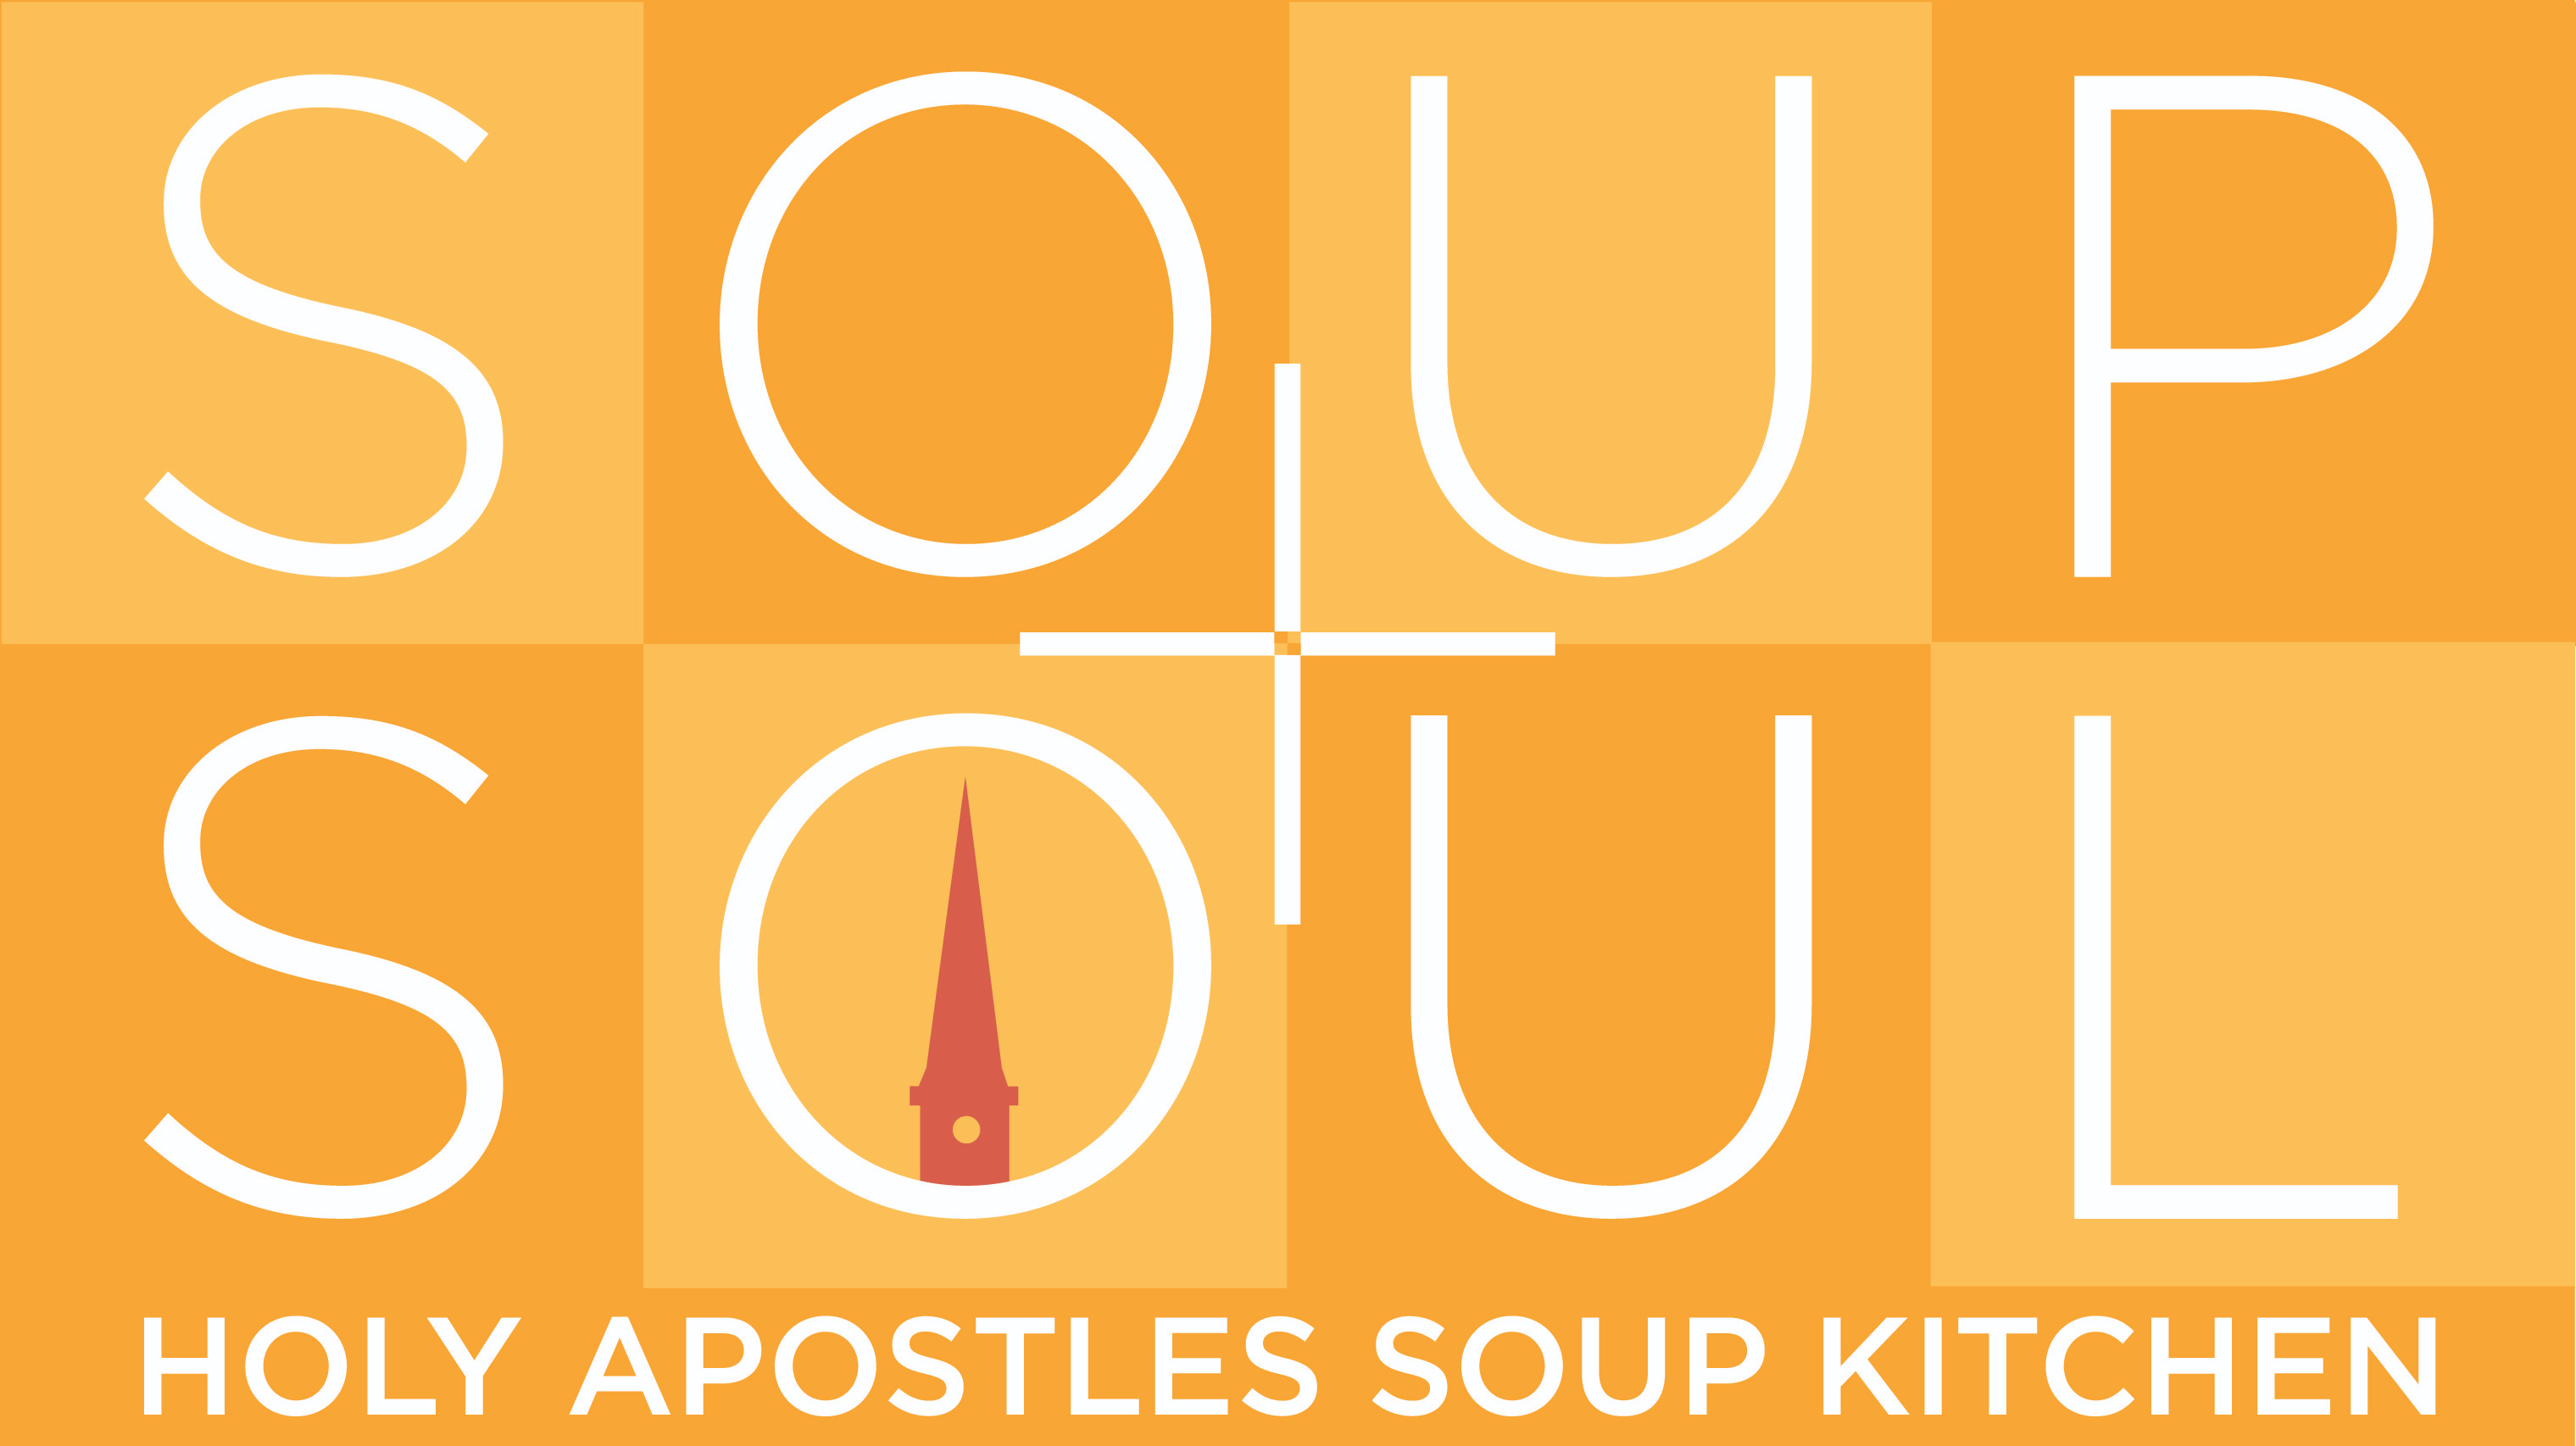 food for the soul holy apostles soup kitchen writers workshop blog rh holyapostlessoupkitchen wordpress com holy apostles soup kitchen new york times holy apostle soup kitchen volunteer